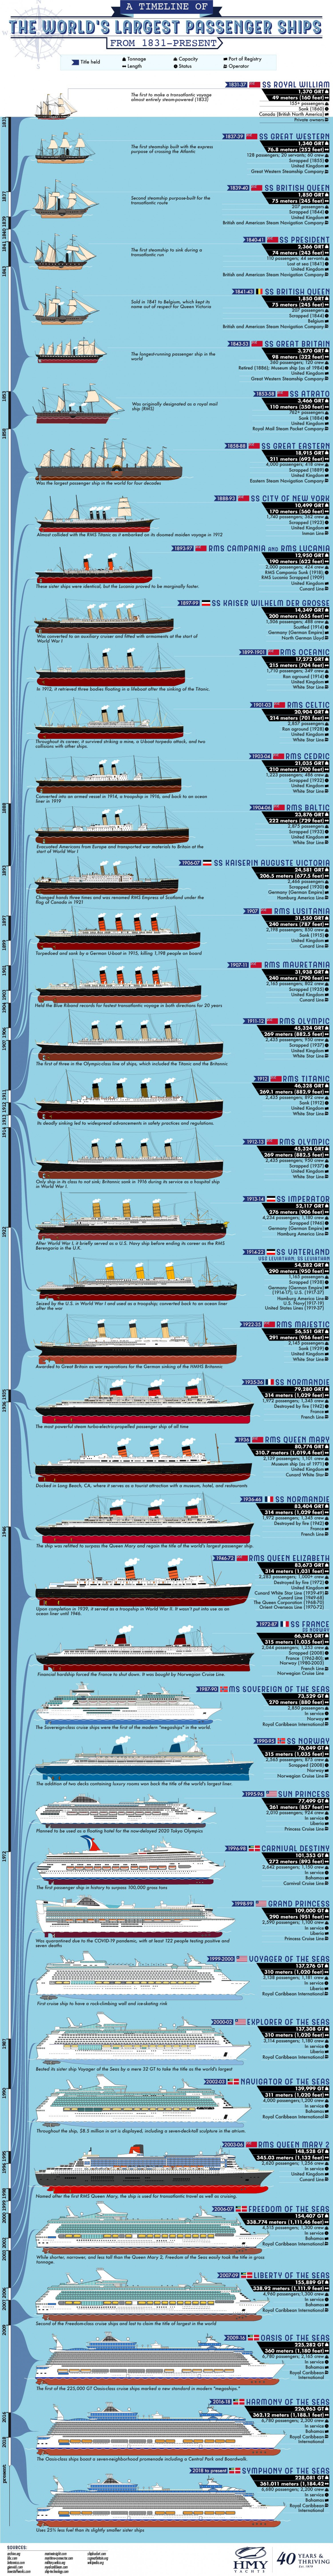 A Timeline of The World's Largest Passenger Ships From 1831-Present  Infographic